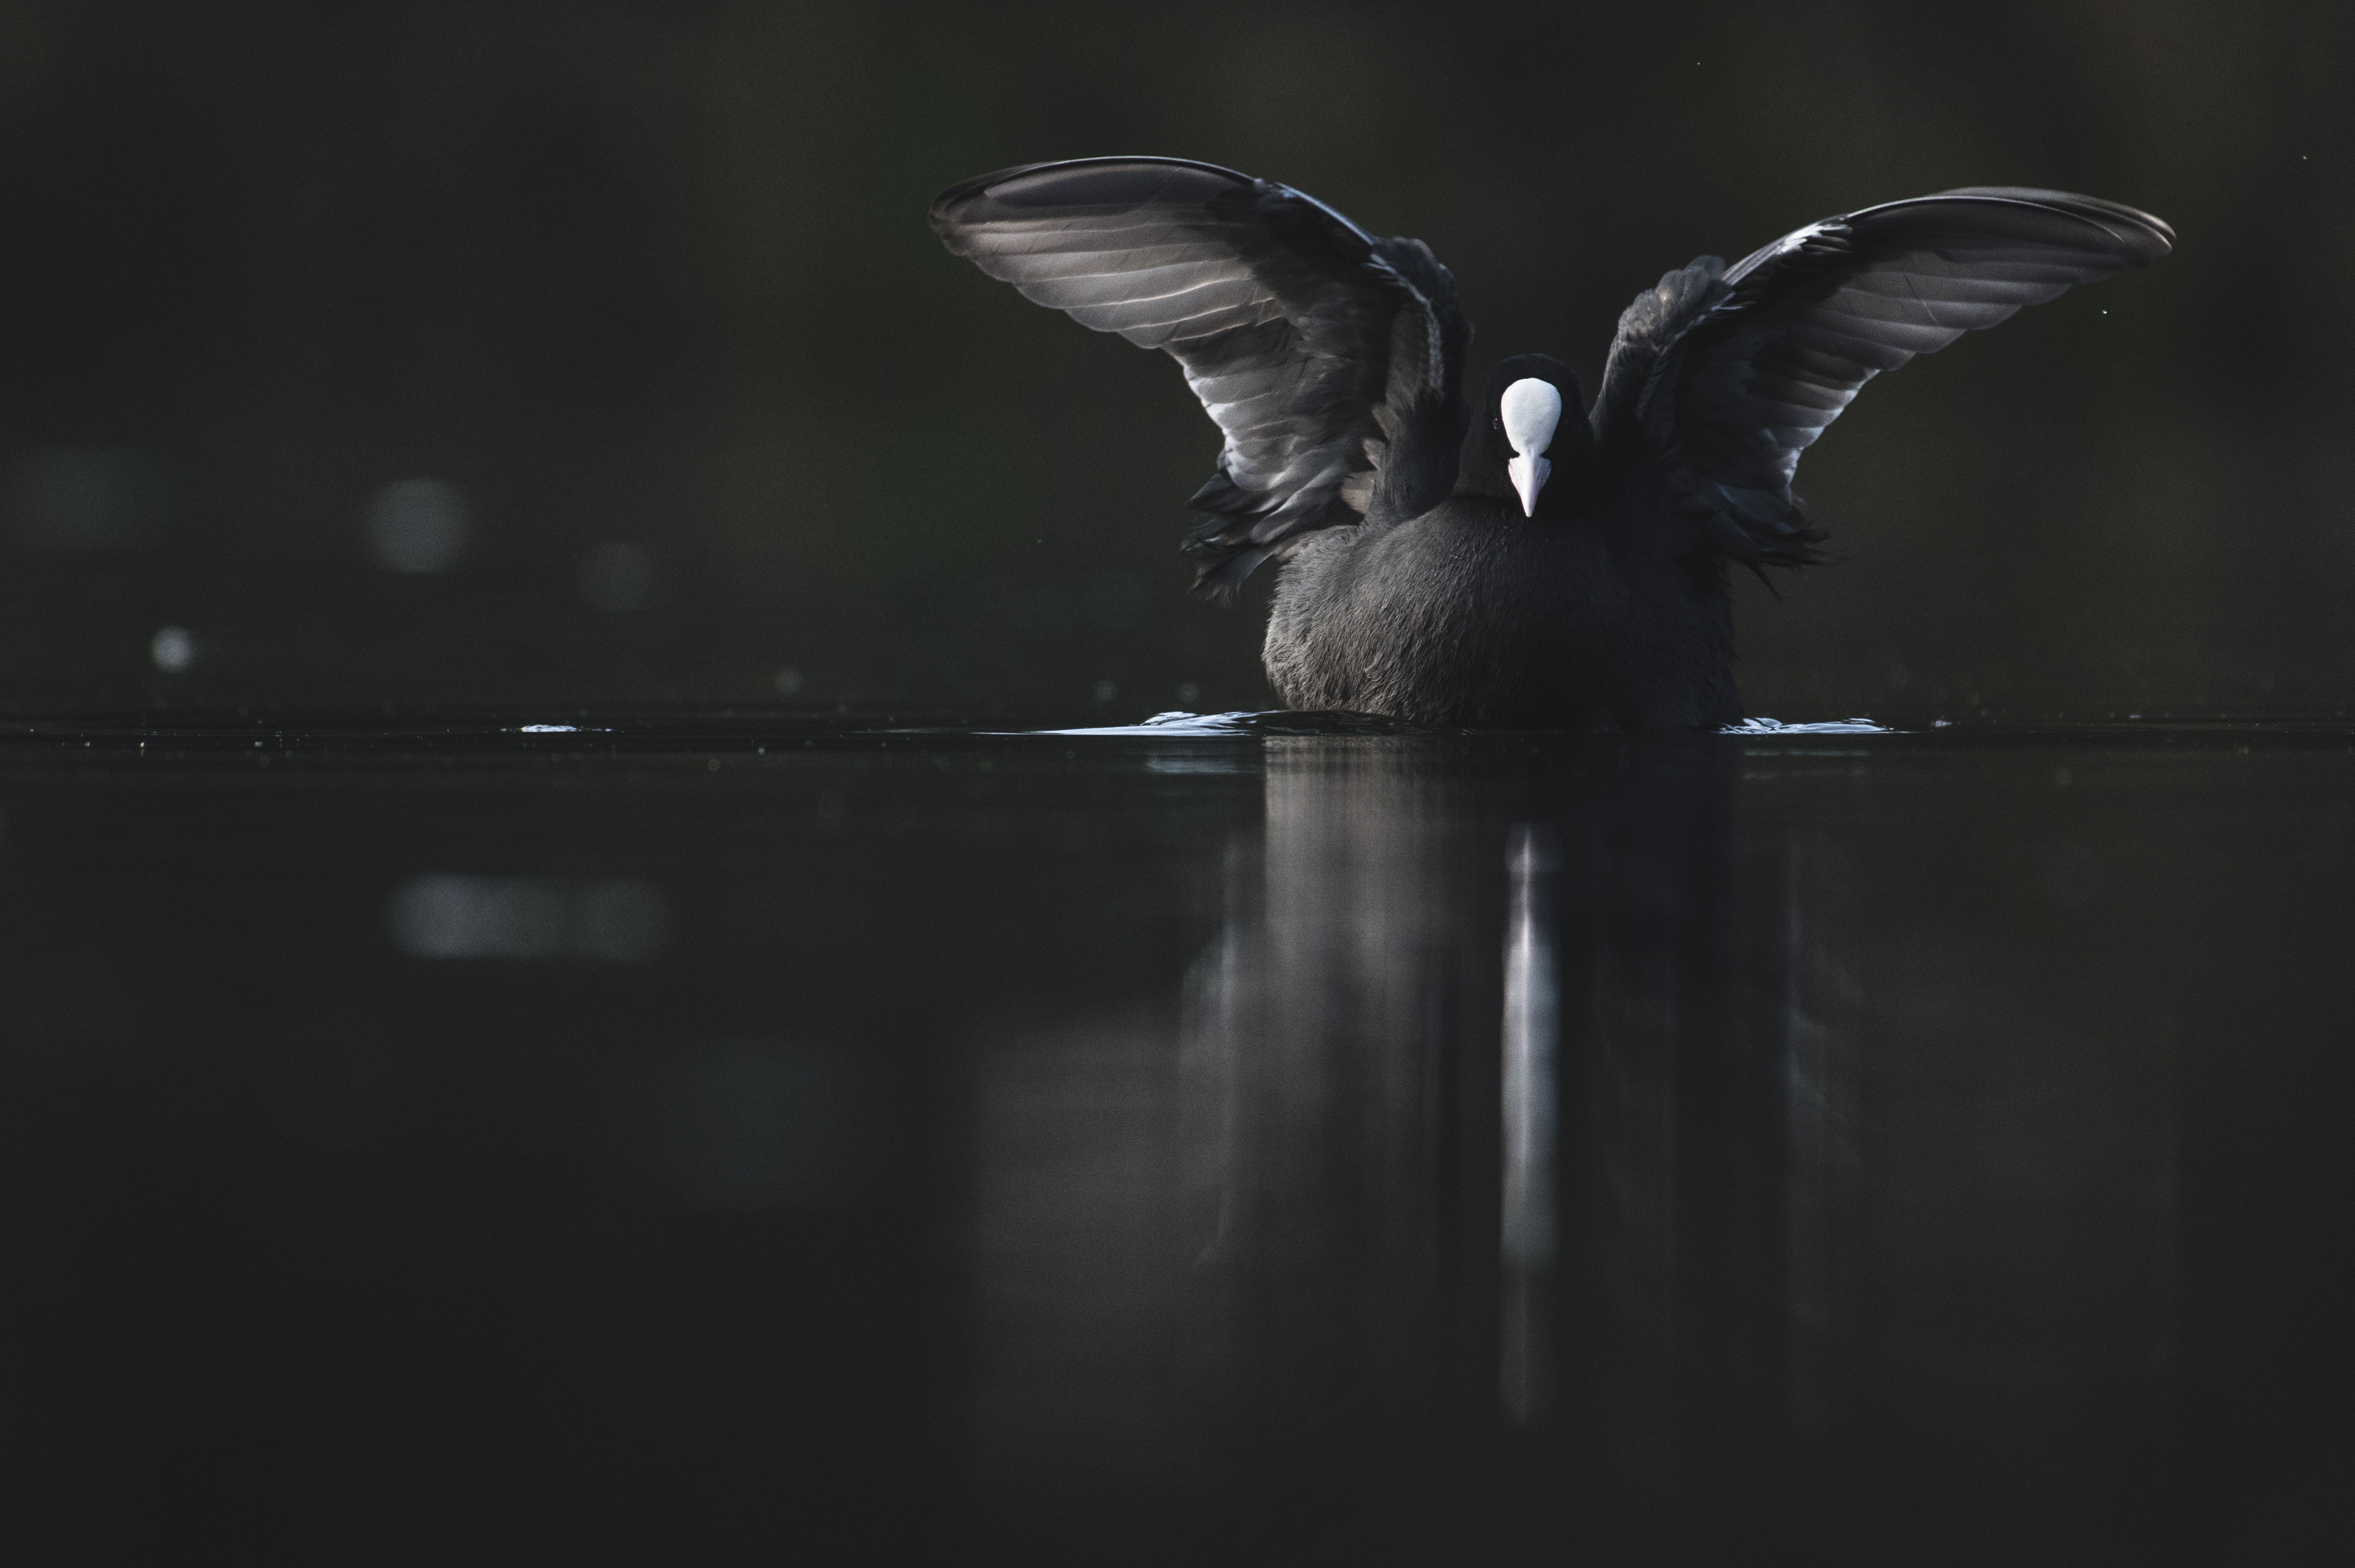 Bird flapping its wings on the water